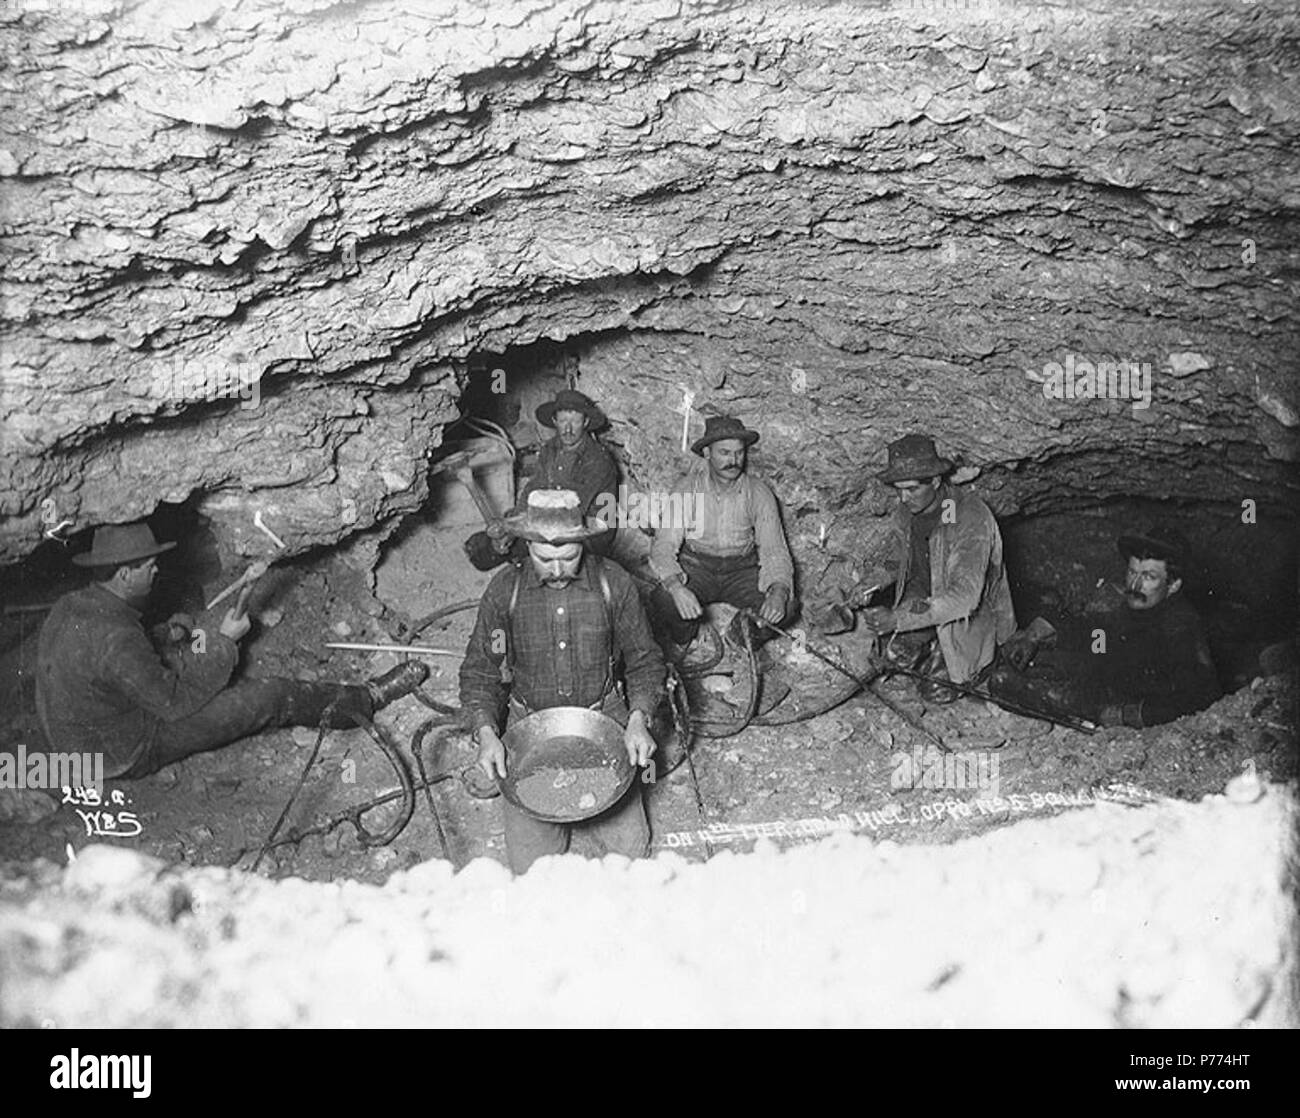 . English: Miners thawing frozen ground with steam in an underground gold mine lit by candlelight, Gold Hill, Yukon Territory, ca. 1898 . English: Shows five men using pickaxes and gold pan . Caption on image: 'On 4th tier, Gold Hill, Opp. No. 5 Bonanza.' Same as Hegg 3051 . Original image in Hegg Album 25, page 13 . Original photograph by Eric A. Hegg 778; copied by Webster and Stevens 243.A . Klondike Gold Rush. Subjects (LCTGM): Gold miners--Yukon--Gold Hill; Gold mining--Yukon--Gold Hill; Candles; Steam Subjects (LCSH): Yukon--Gold discoveries  . circa 1898 9 Miners thawing frozen ground w - Stock Image